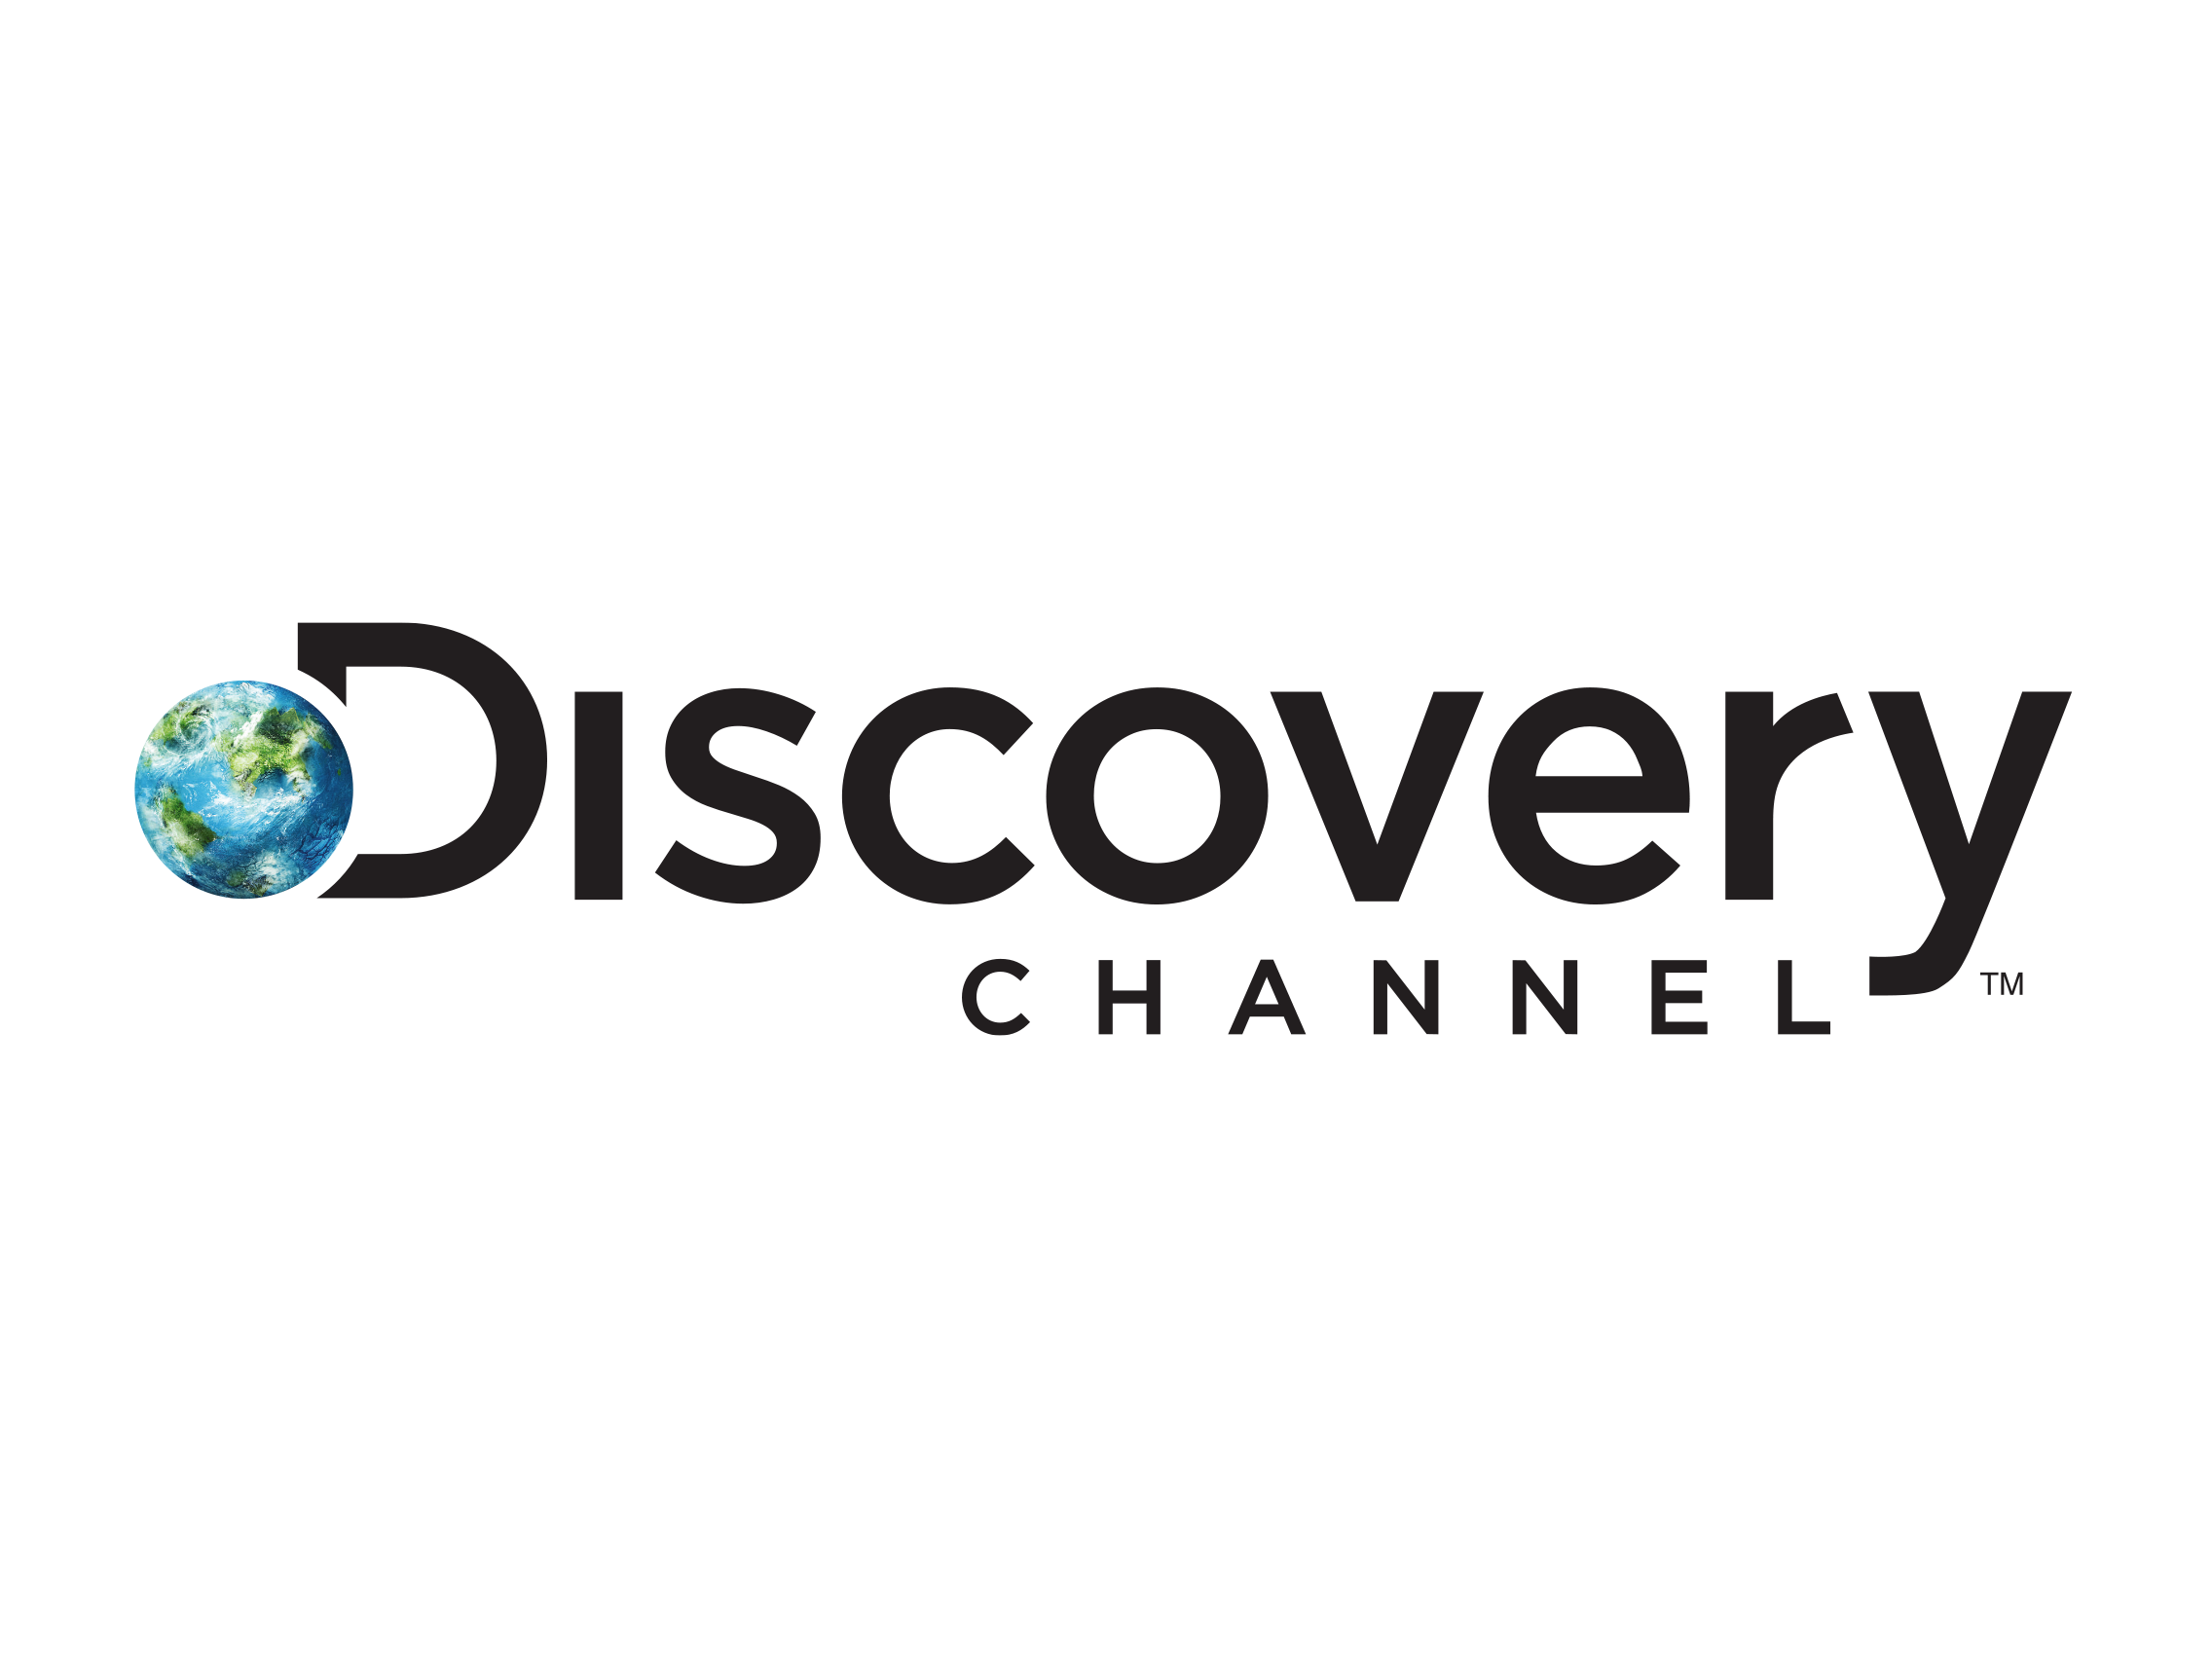 Discovery Channel TV shows, logo